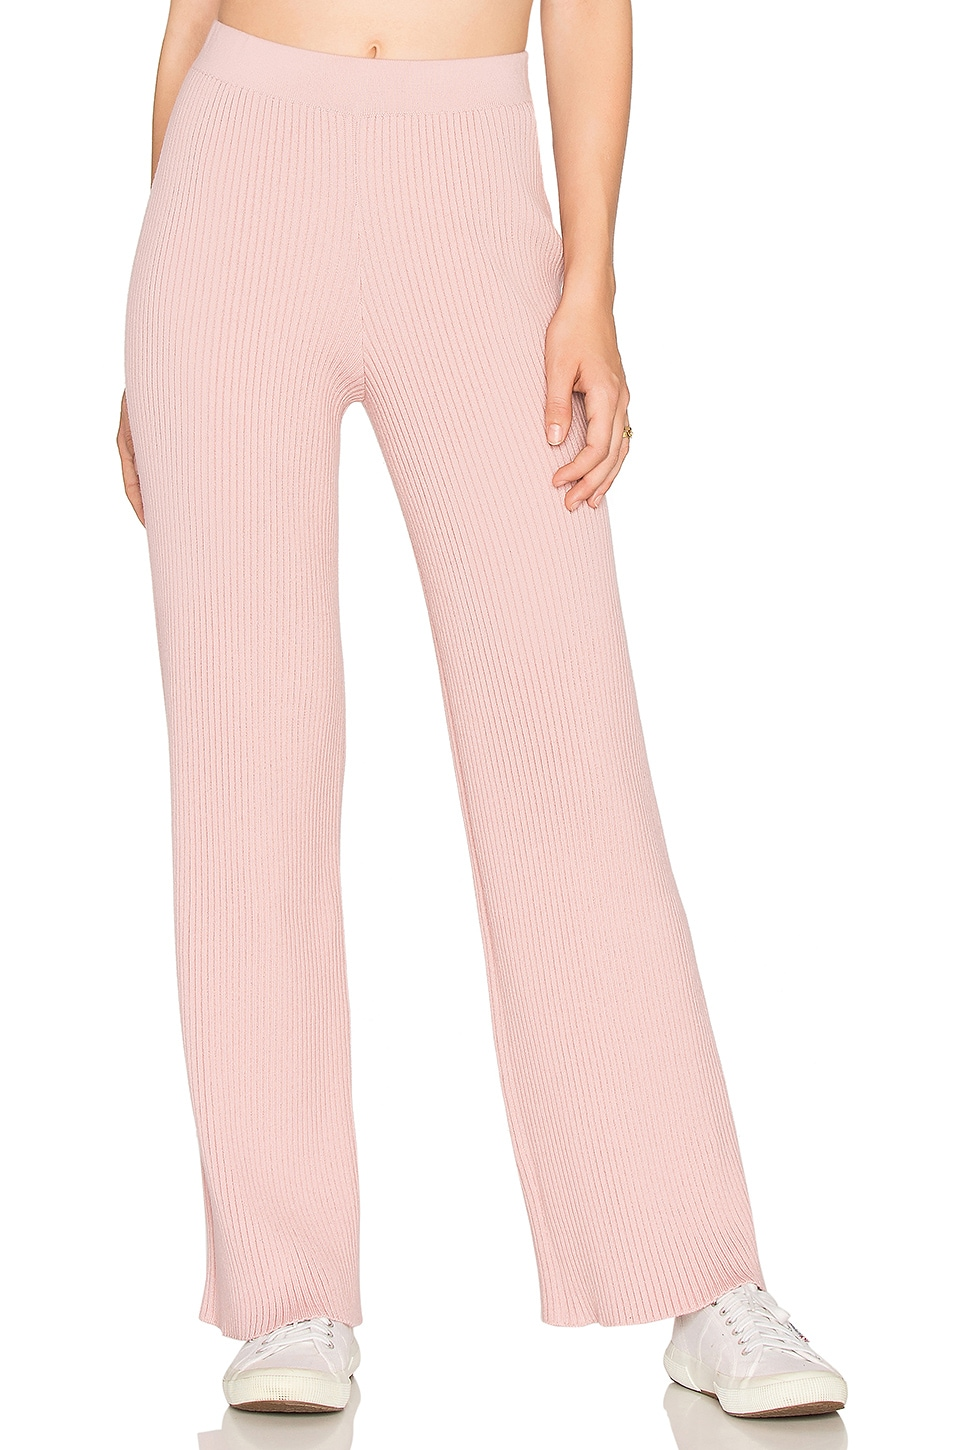 Whit Pant by HELFRICH